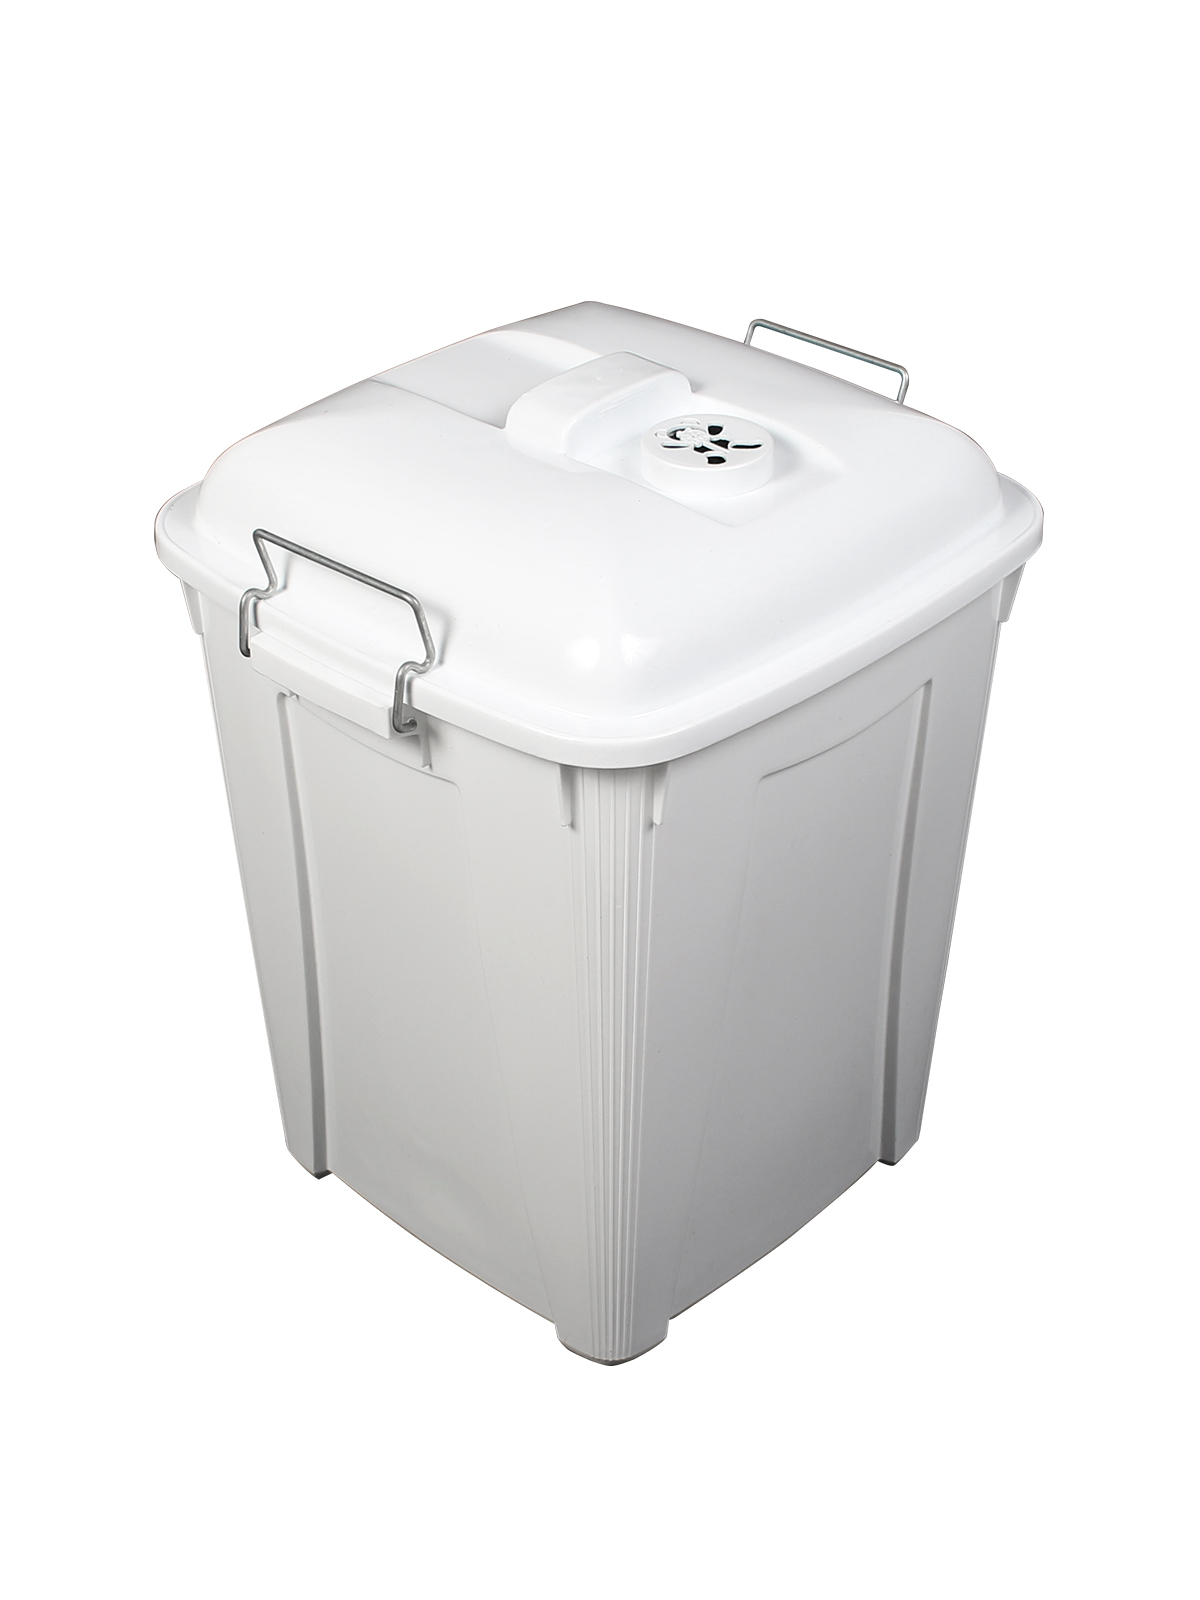 DIAPER PAIL 14 G [6 PACK]